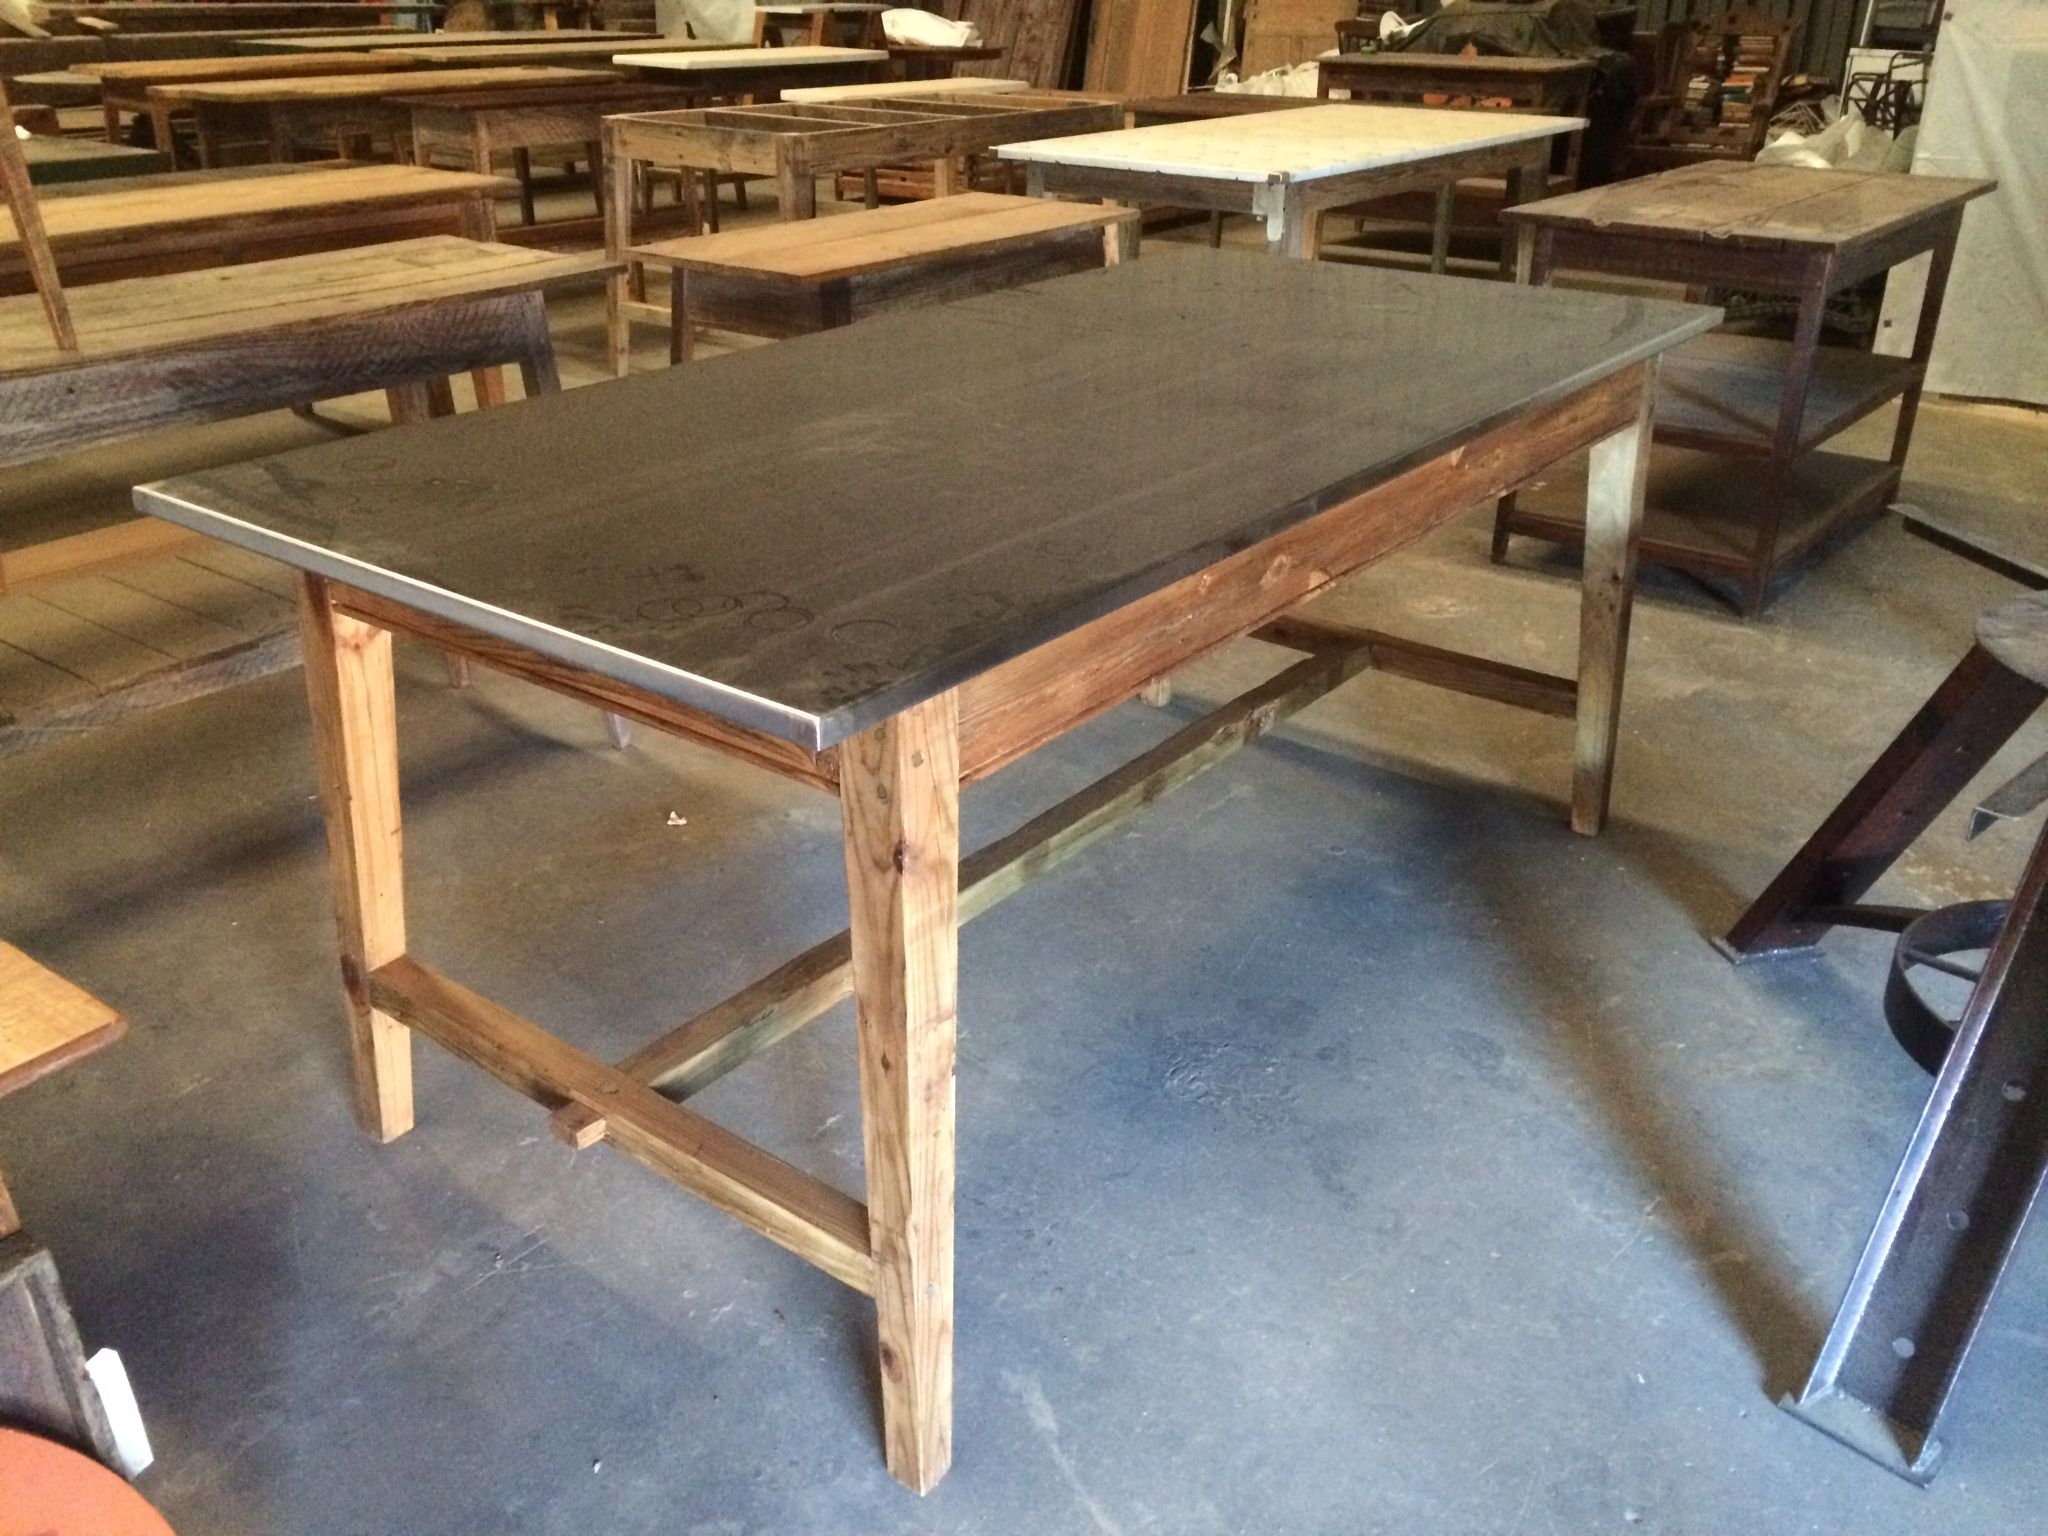 Kitchen Island With Stainless Steel Top Base Made From Old Reclaimed Wood By Landrum Tables